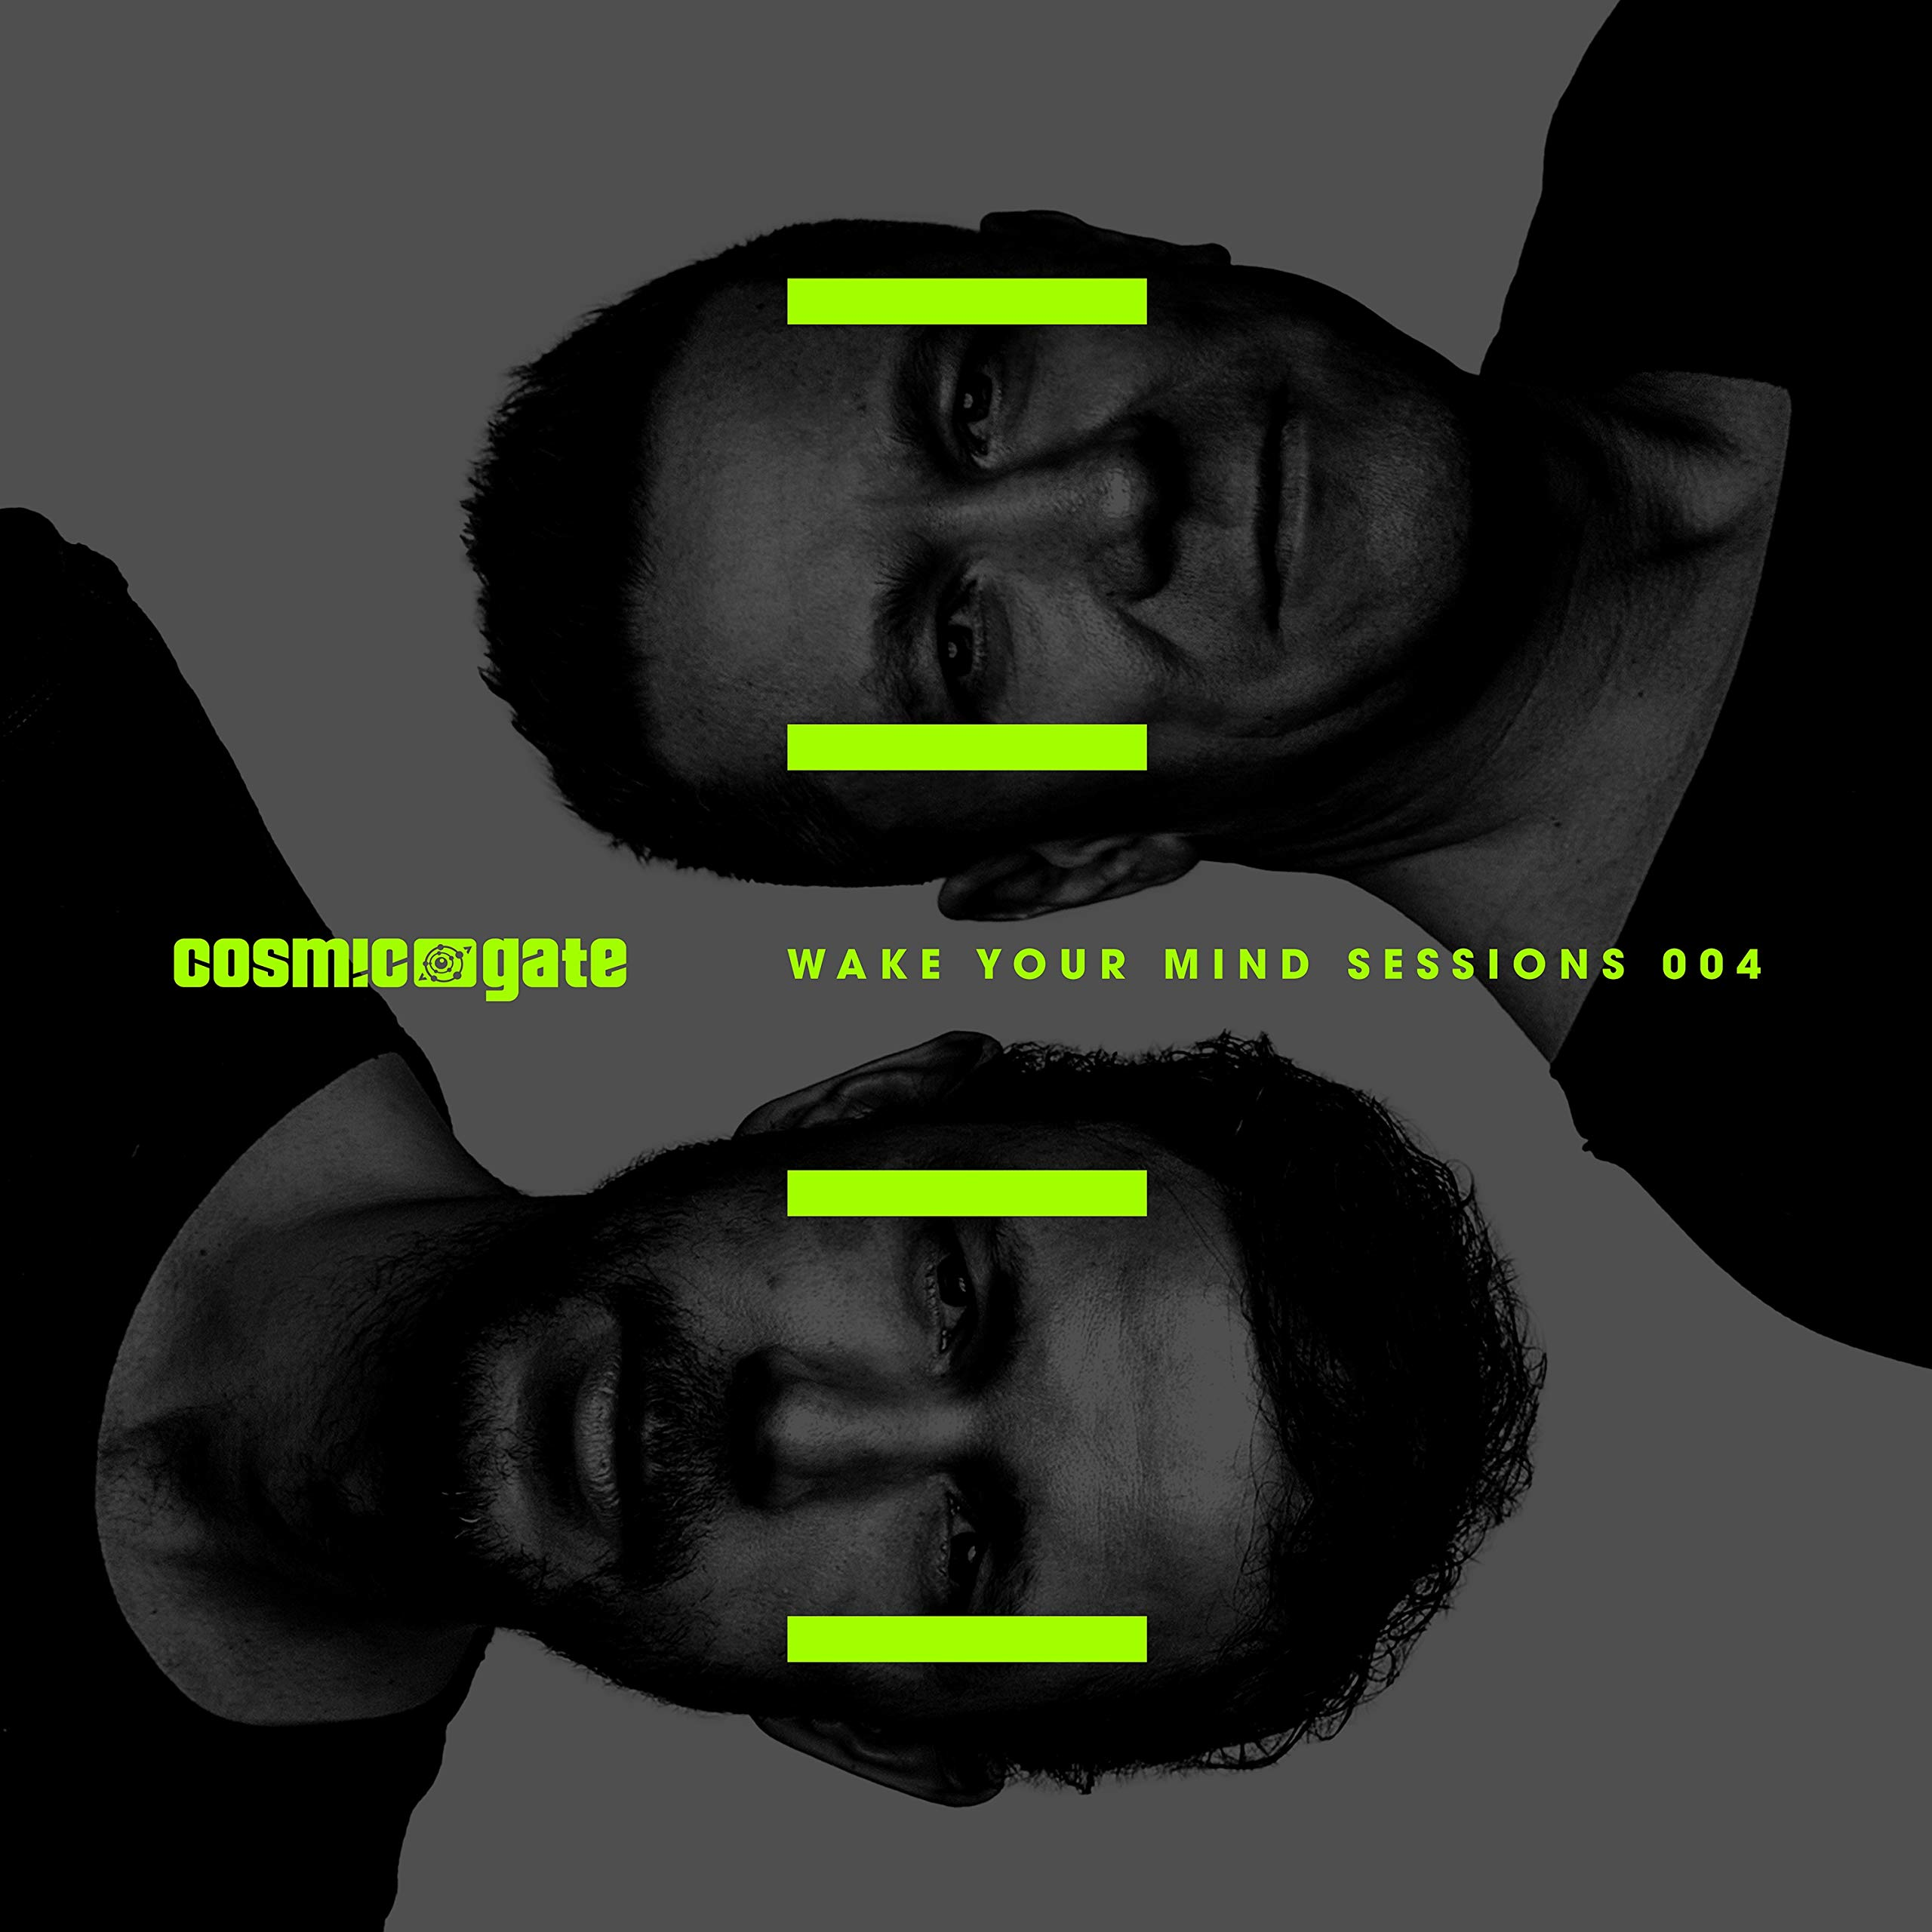 VA – Cosmic Gate – Wake Your Mind Sessions 004 (2020) [FLAC]